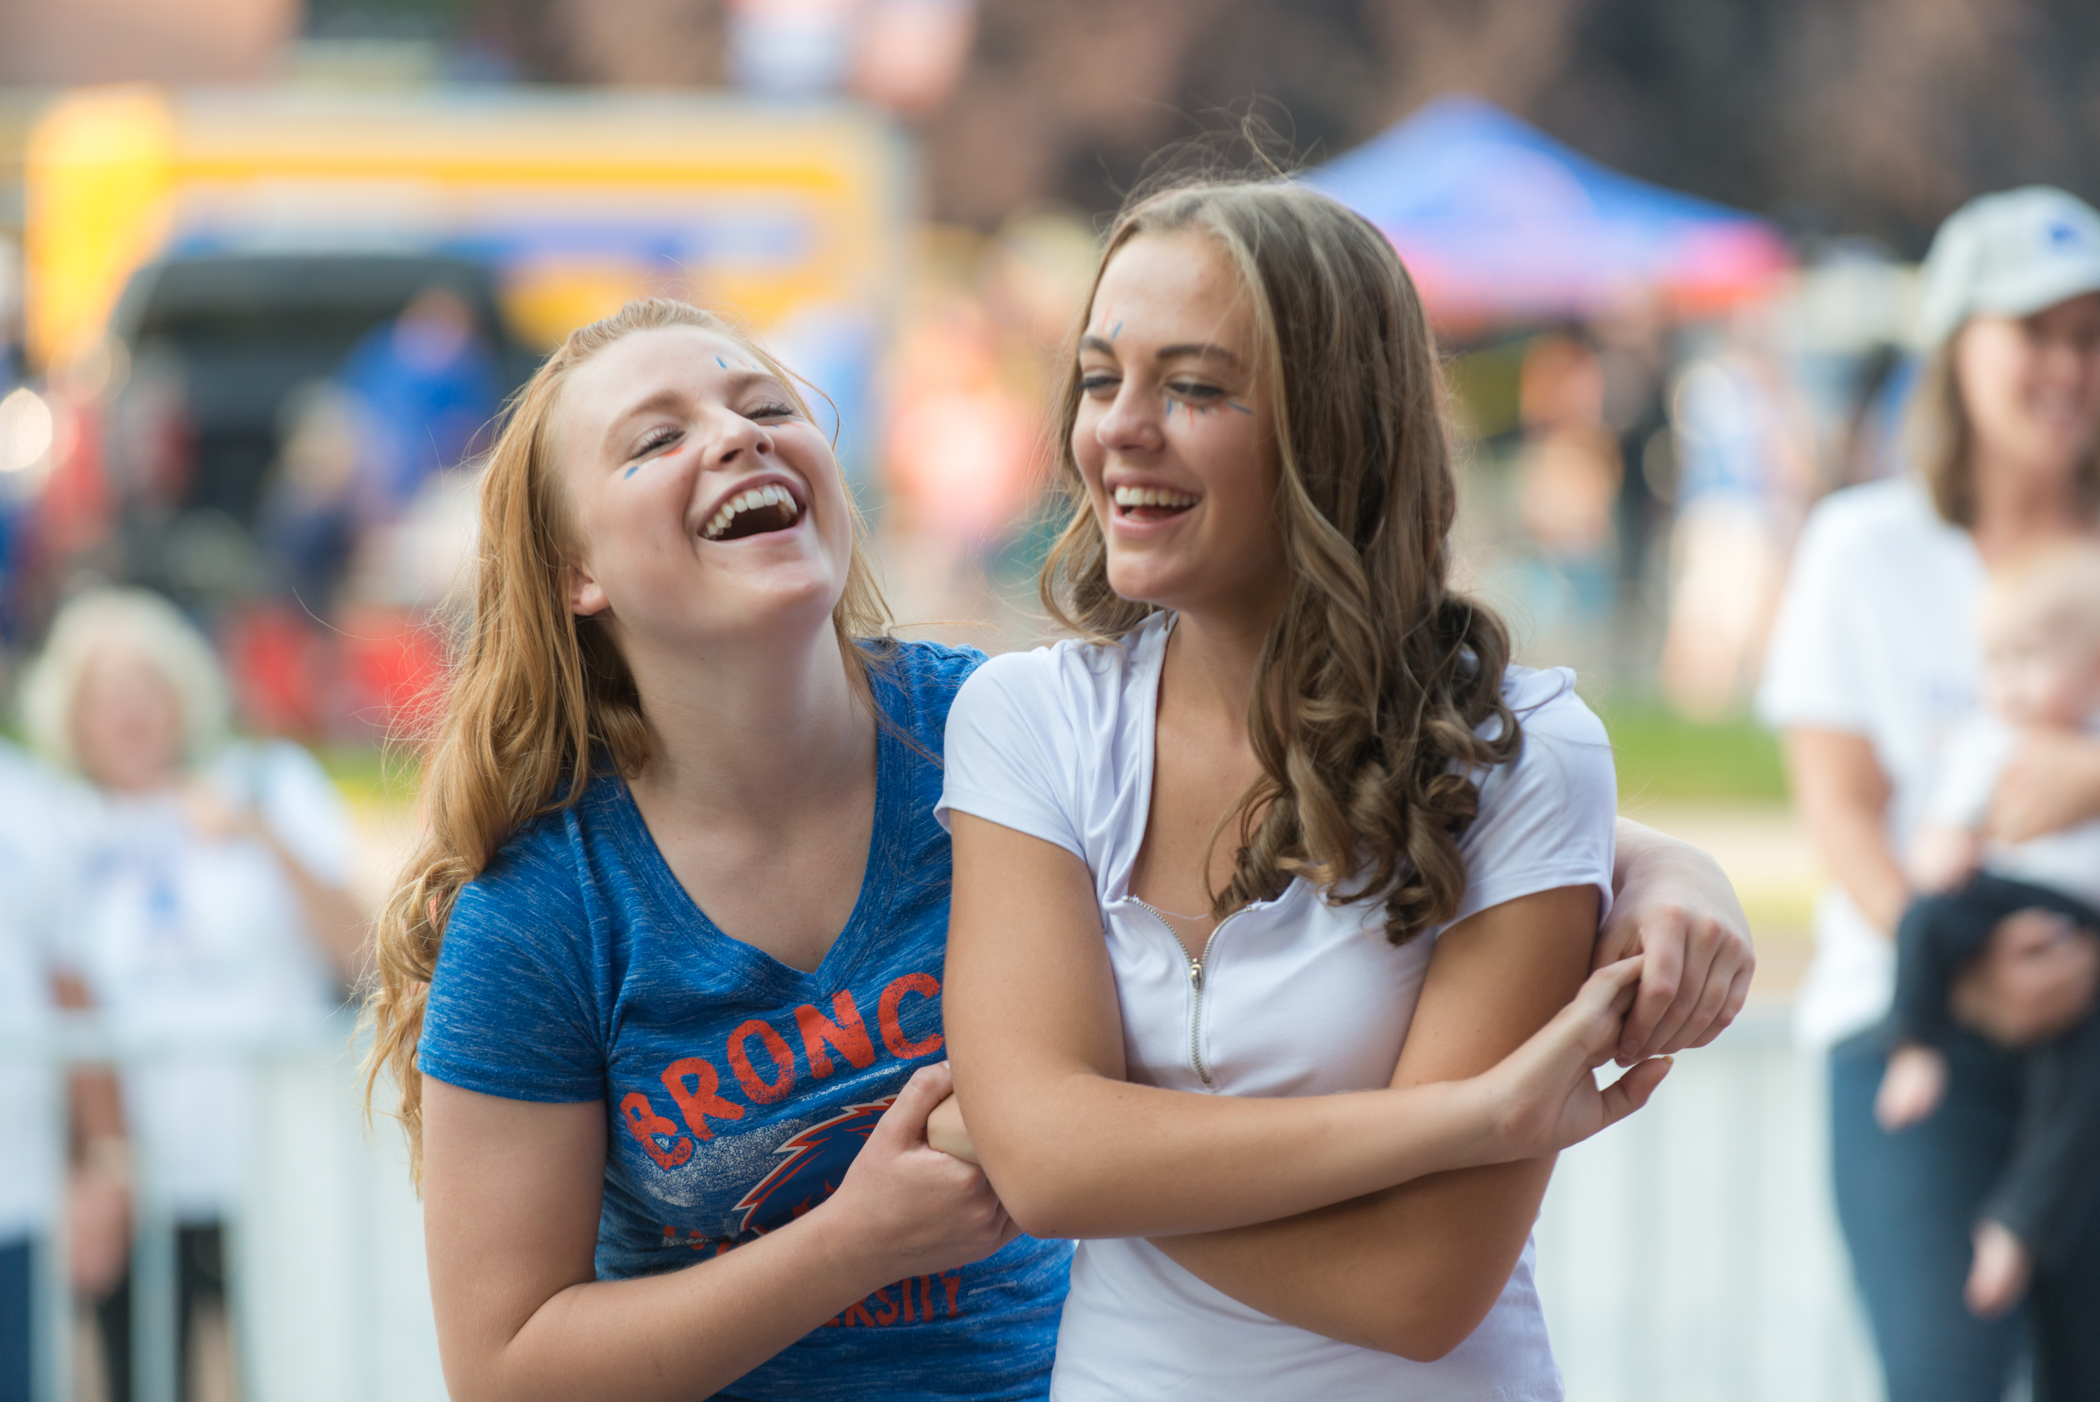 Alumni and Friends Tailgate, Boise State Football vs Uconn, Fan life, Aaron Bacus Photo